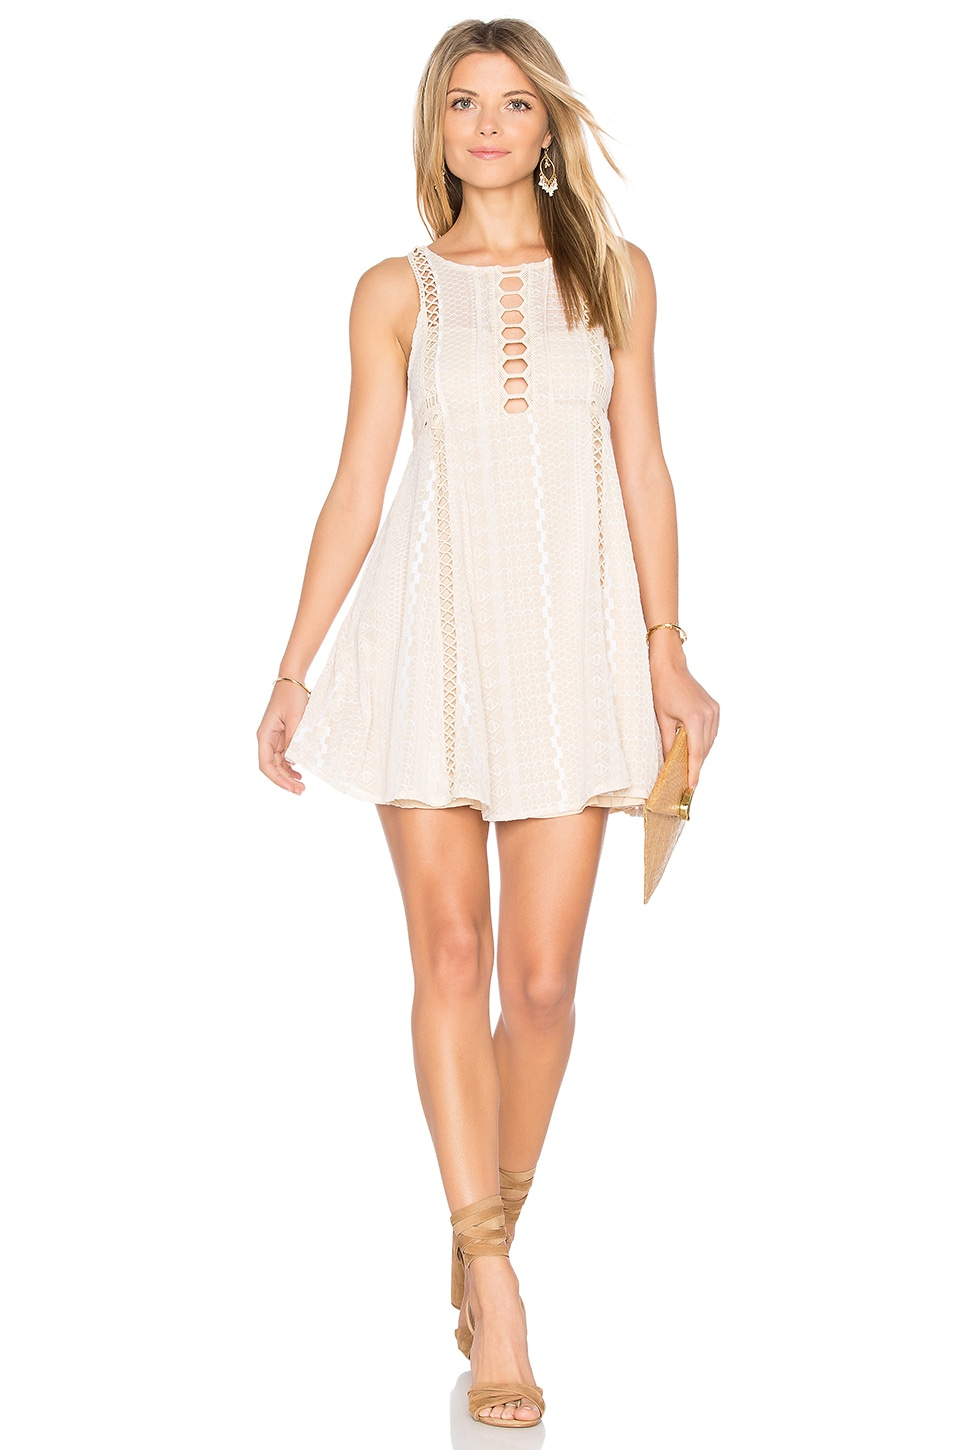 Free People Wherever You Go Mini Dress in Ivory